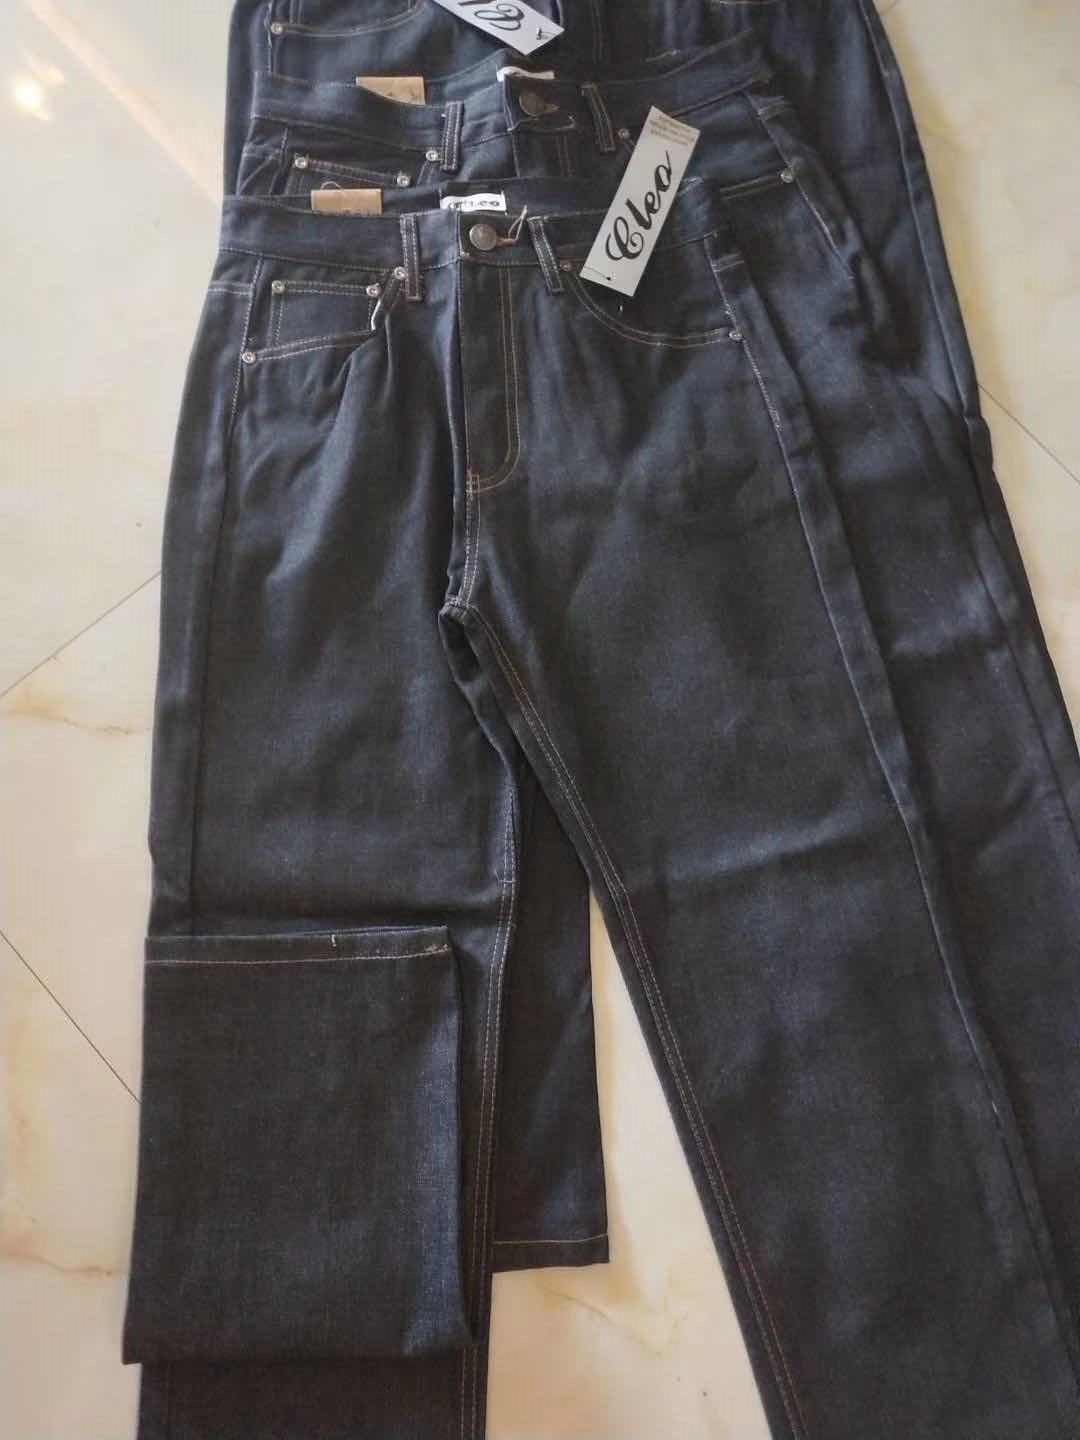 28979 - New Men Jeans Stock China